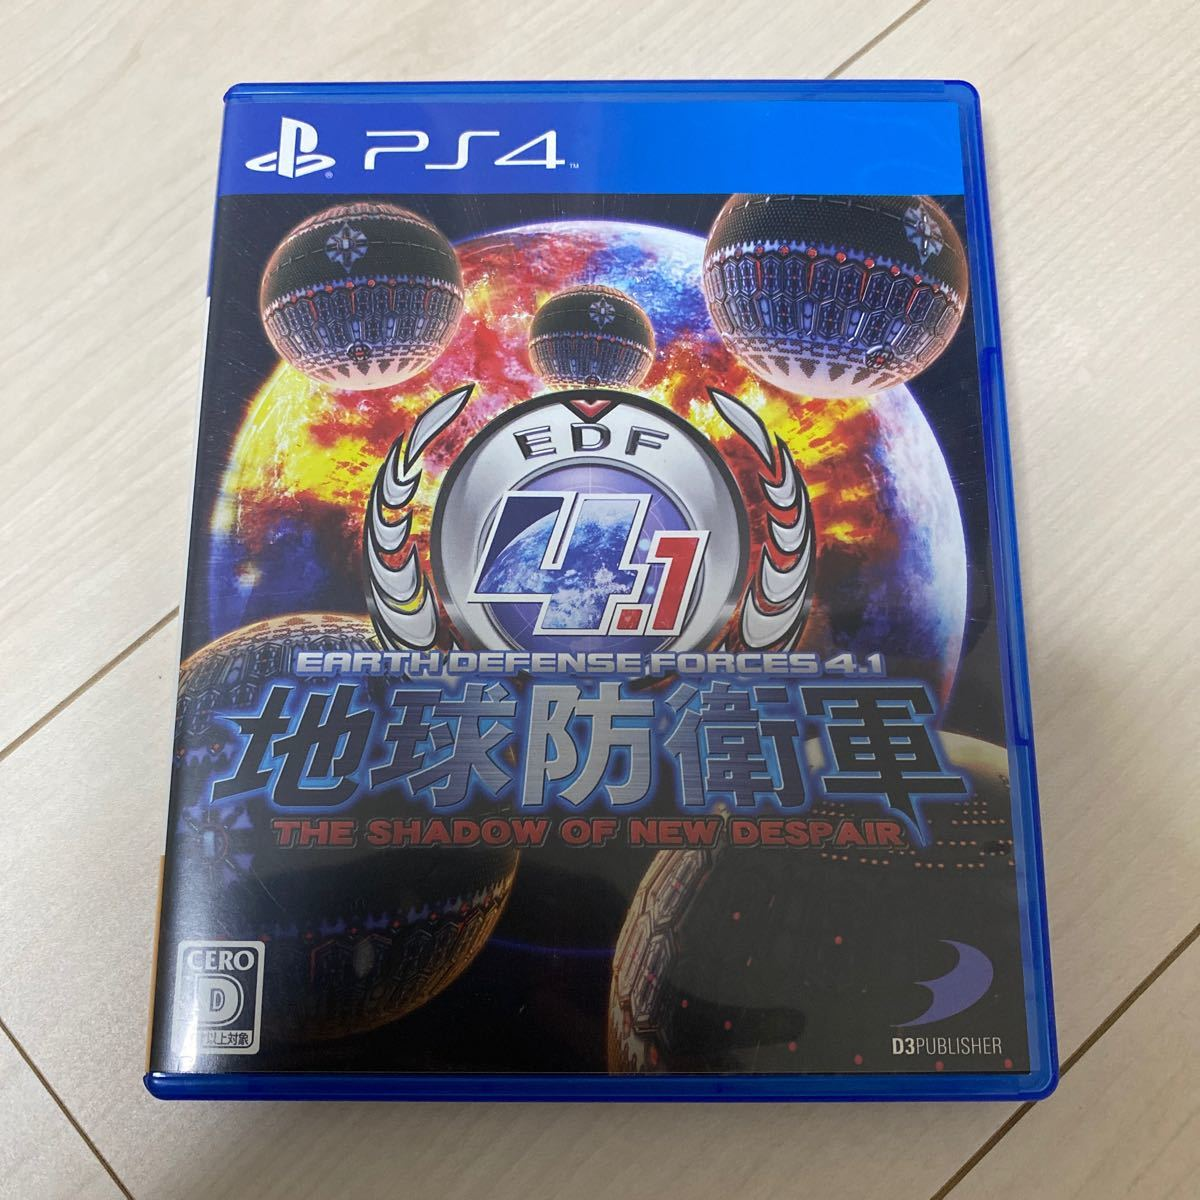 【PS4】 地球防衛軍4.1 THE SHADOW OF NEW DESPAIR